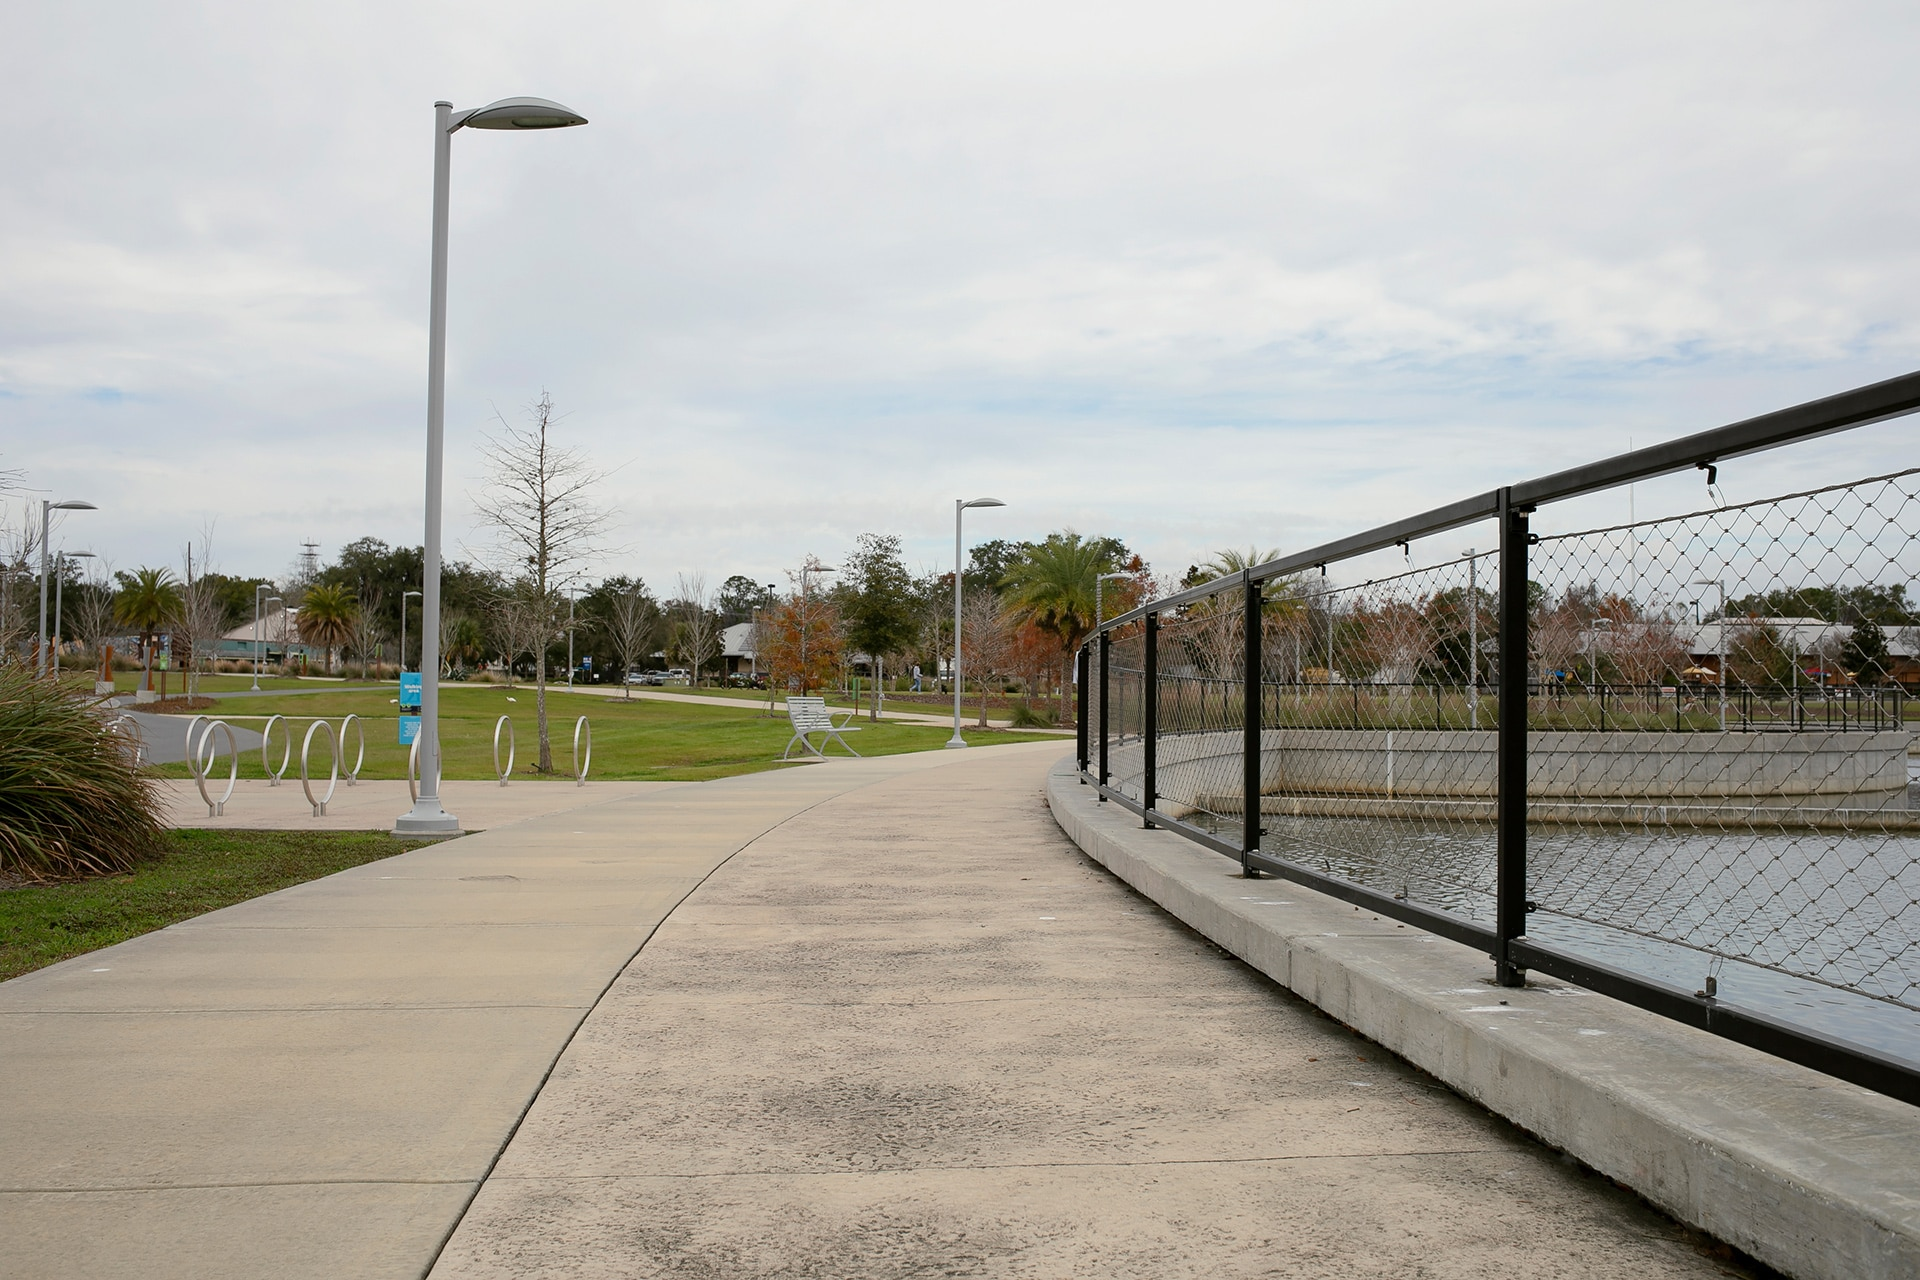 Concrete walkway with water and a protective gate on the side